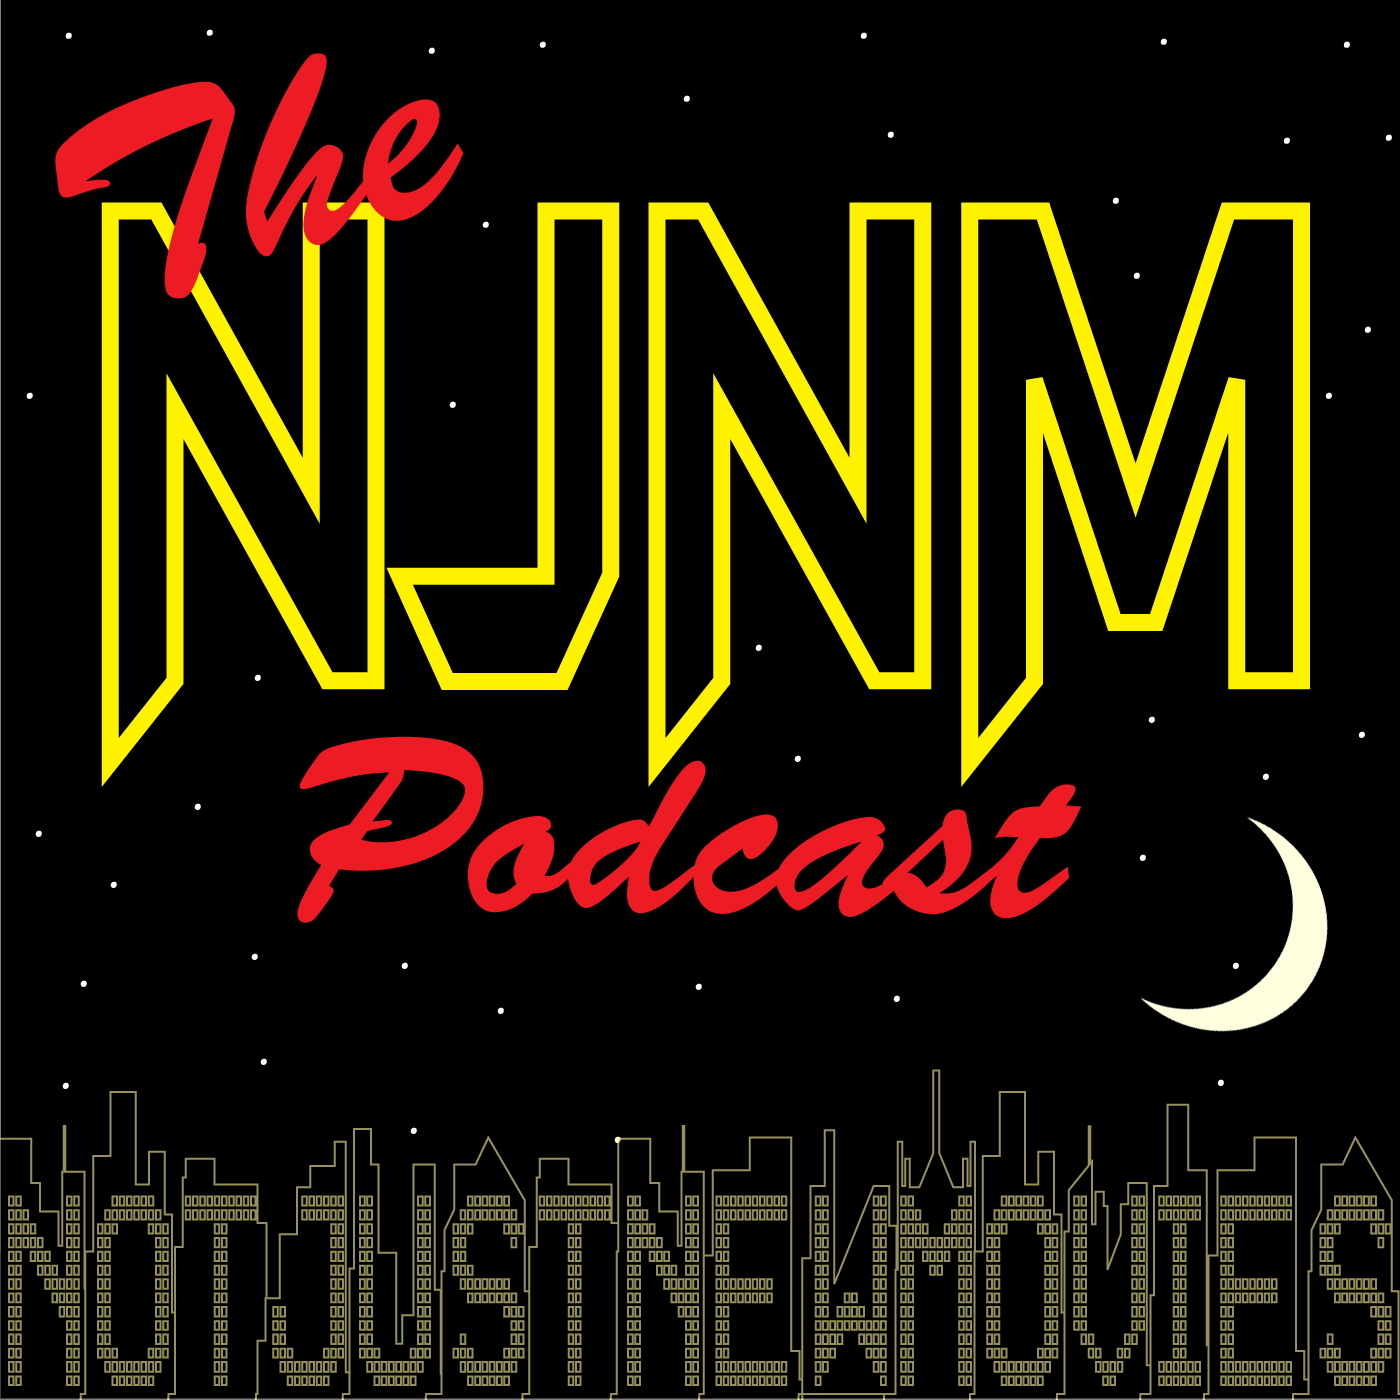 Not Just New Movies Podcast!